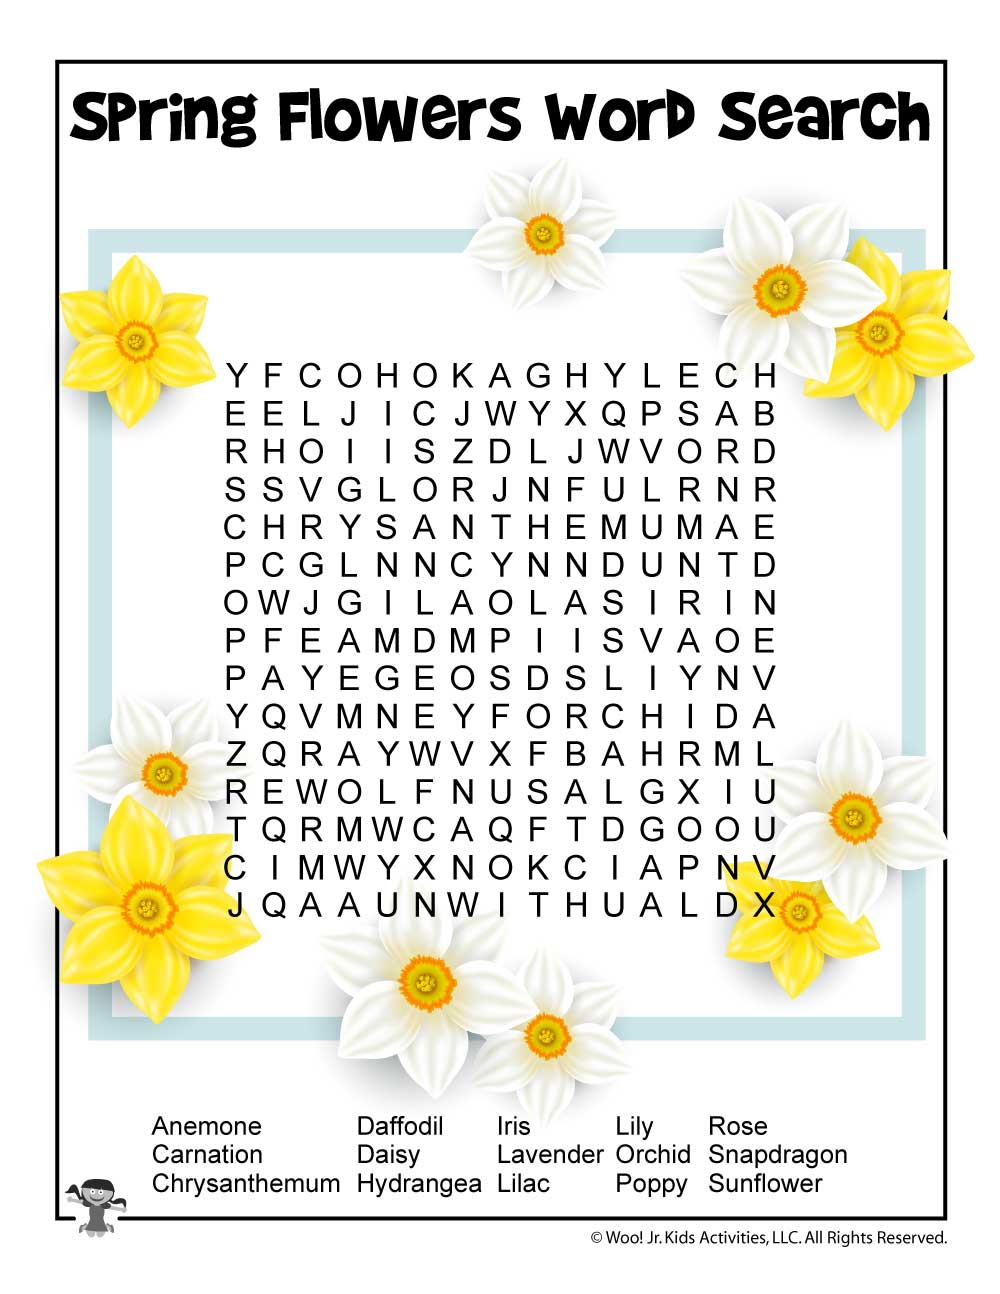 photograph regarding Spring Word Search Printable named Straightforward Spring Phrase Glance Woo! Jr. Children Routines